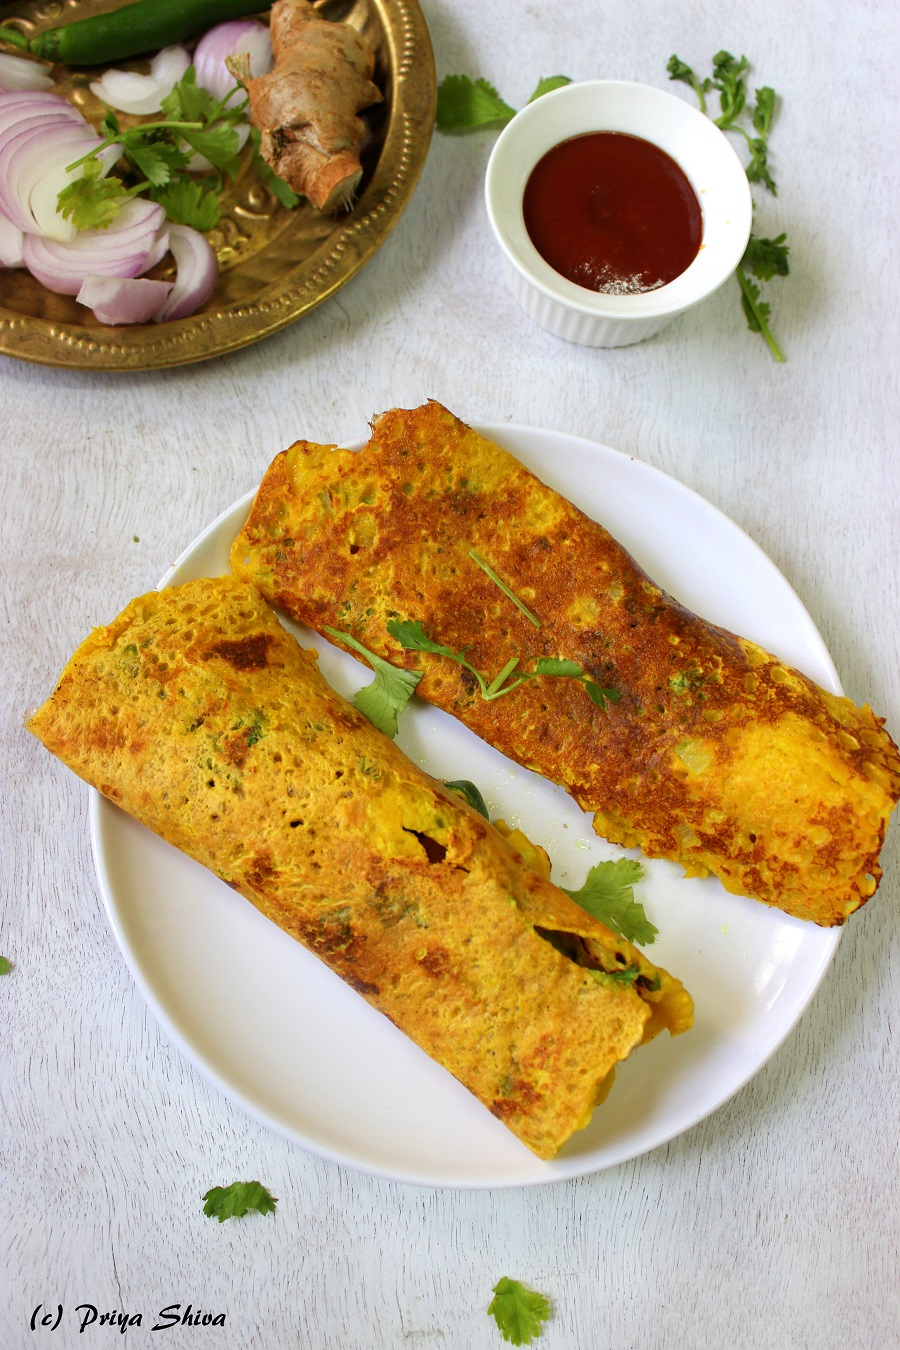 Besan Ka Cheela - Chickpeas Flour Crepes